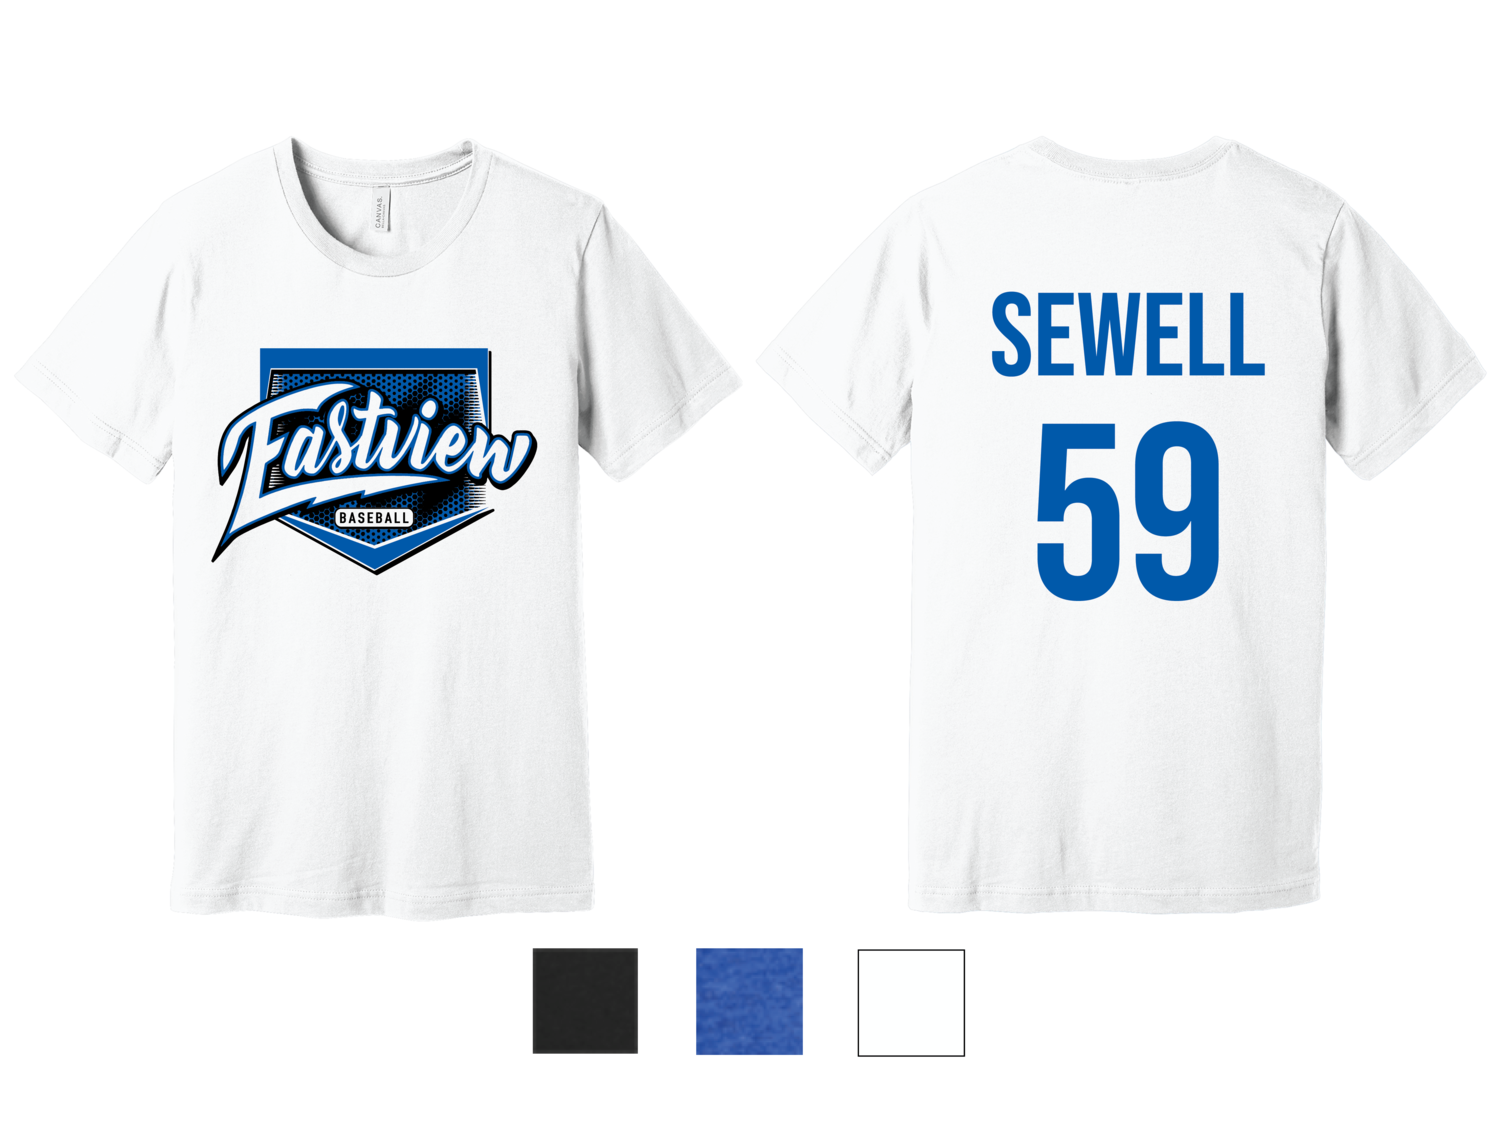 Eastview Baseball Bella+Canvas® Unisex Blend Short Sleeve Tee